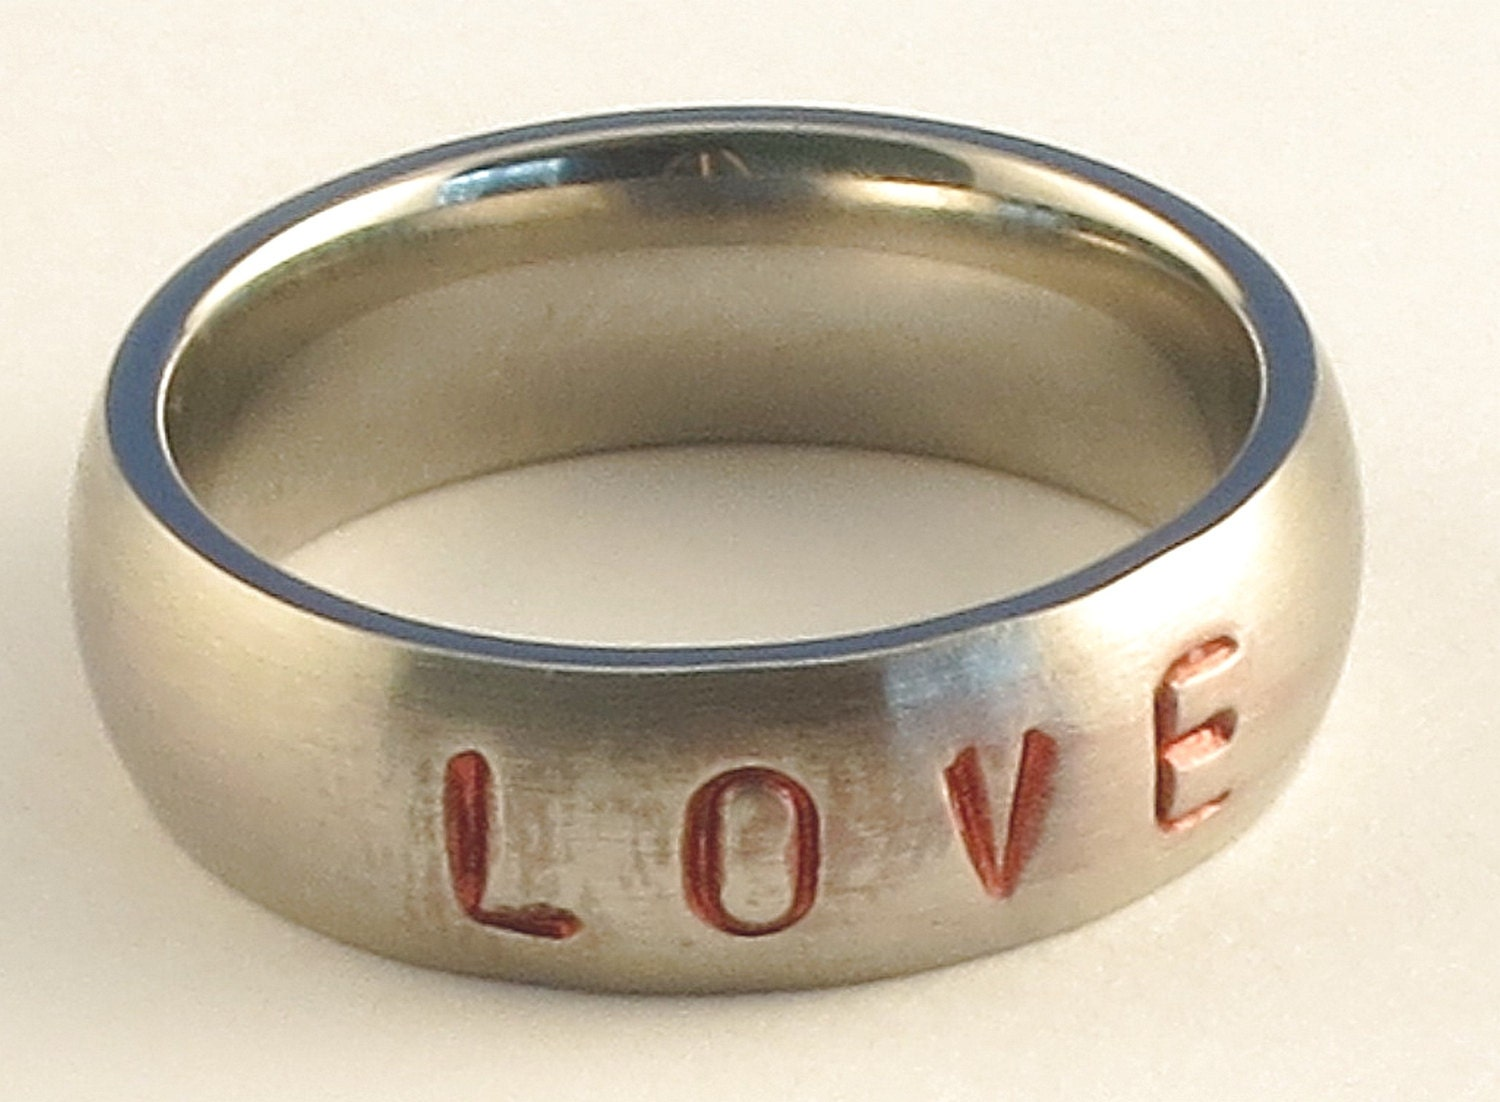 LOVE - Stainless Steel Low Dome Name Ring 5mm Ring Sizes 3-14